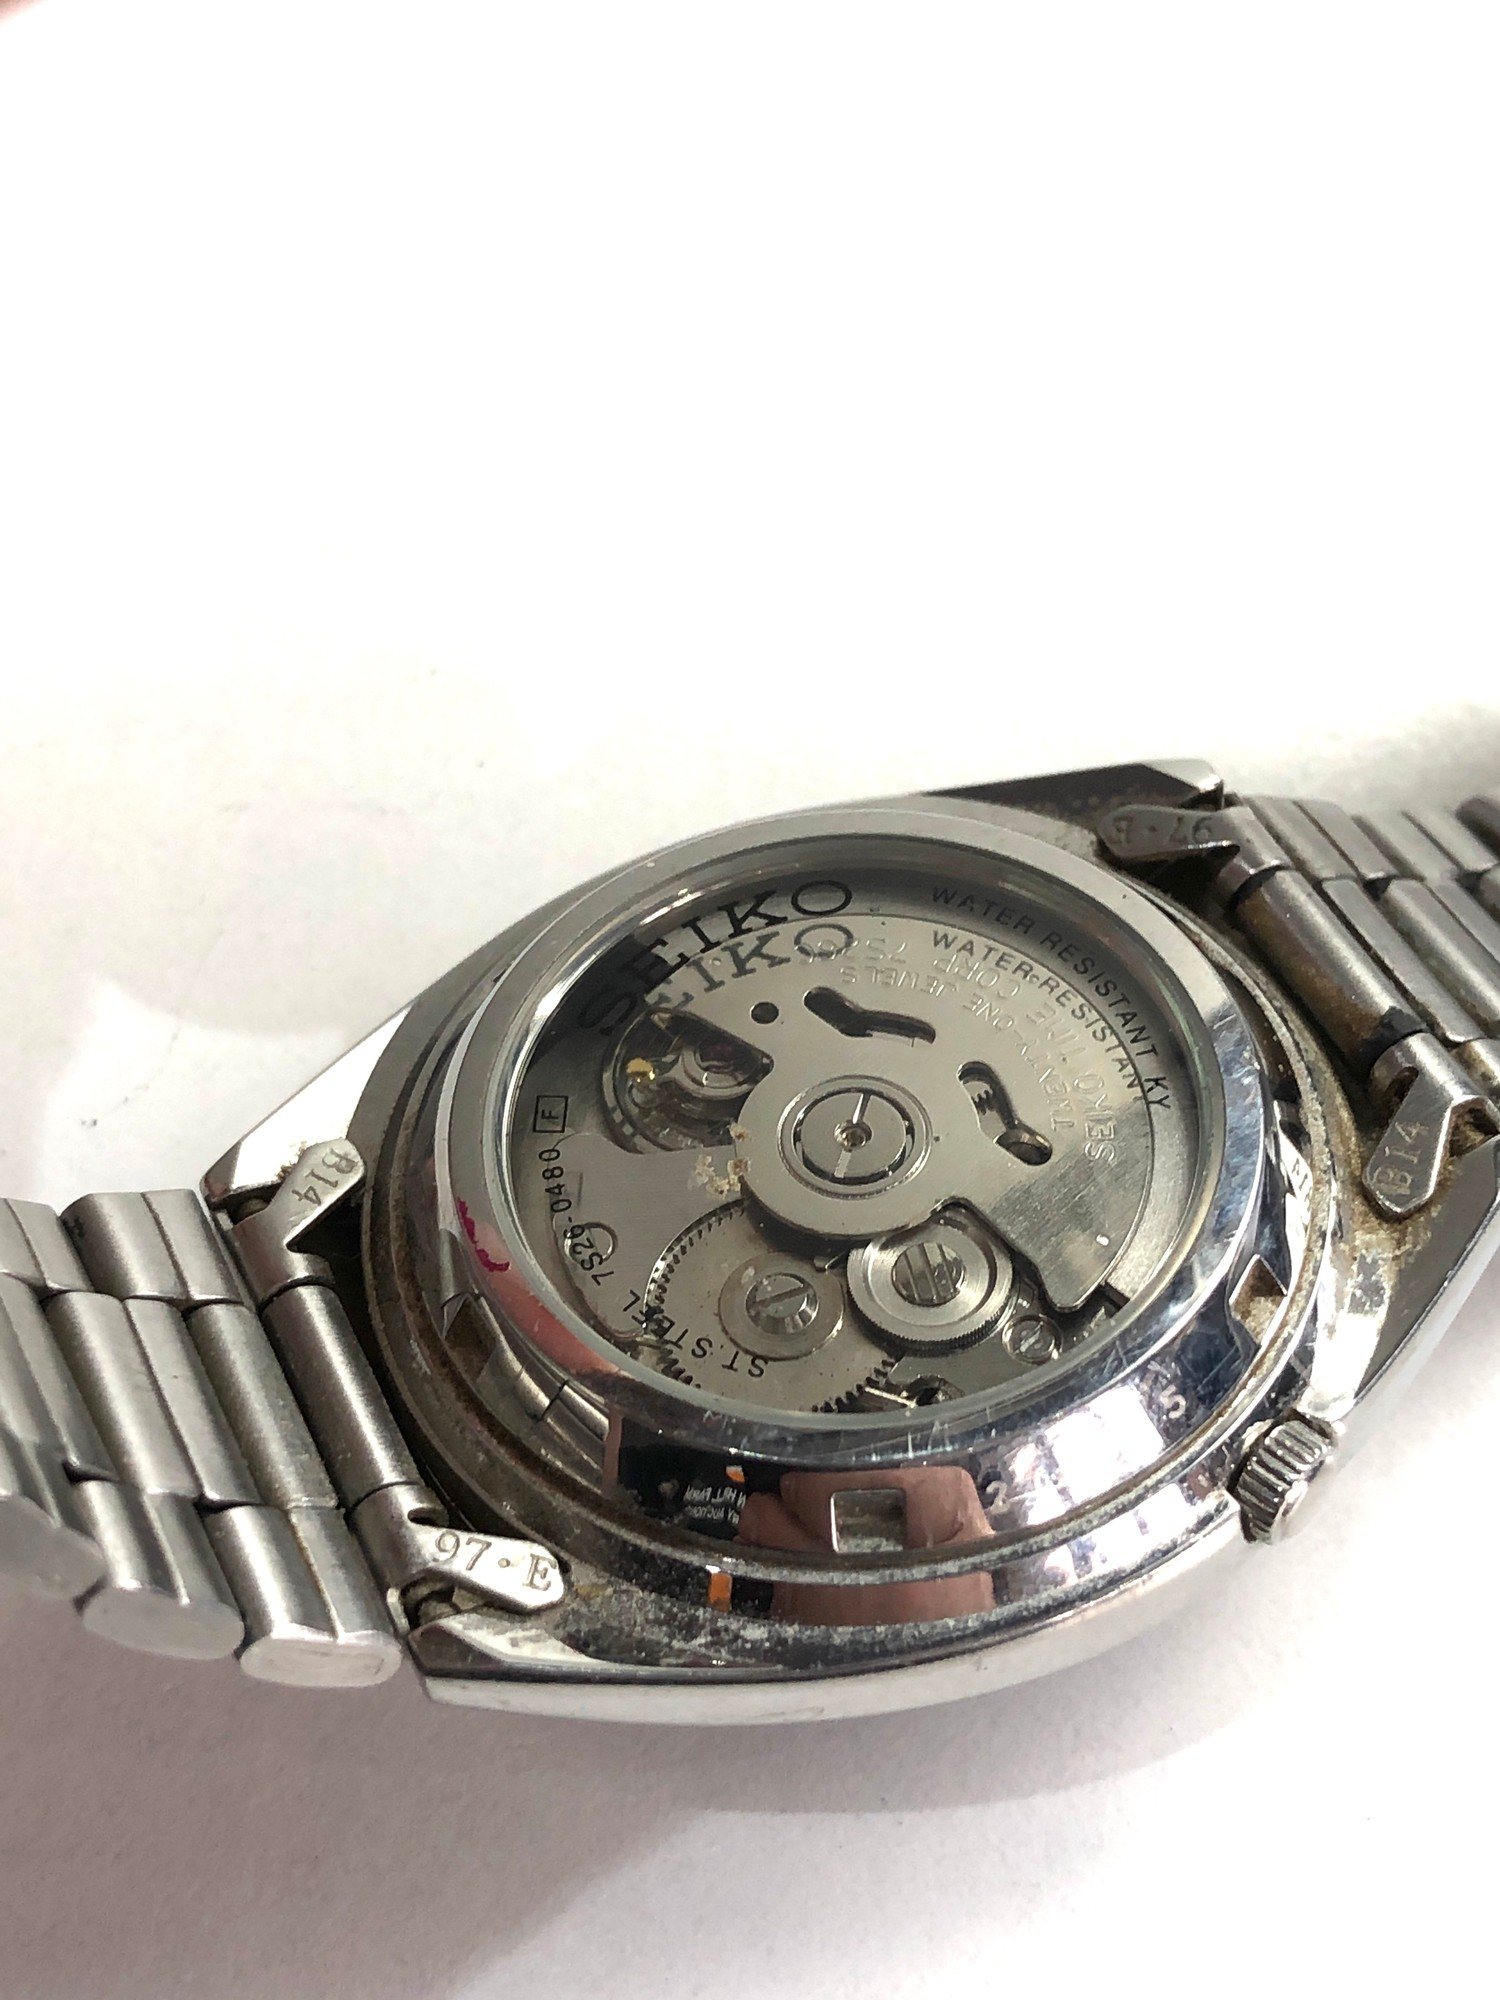 Gents seiko 5 automatic gents wristwatch in working order but no warranty is given 7526-0480 - Image 4 of 4